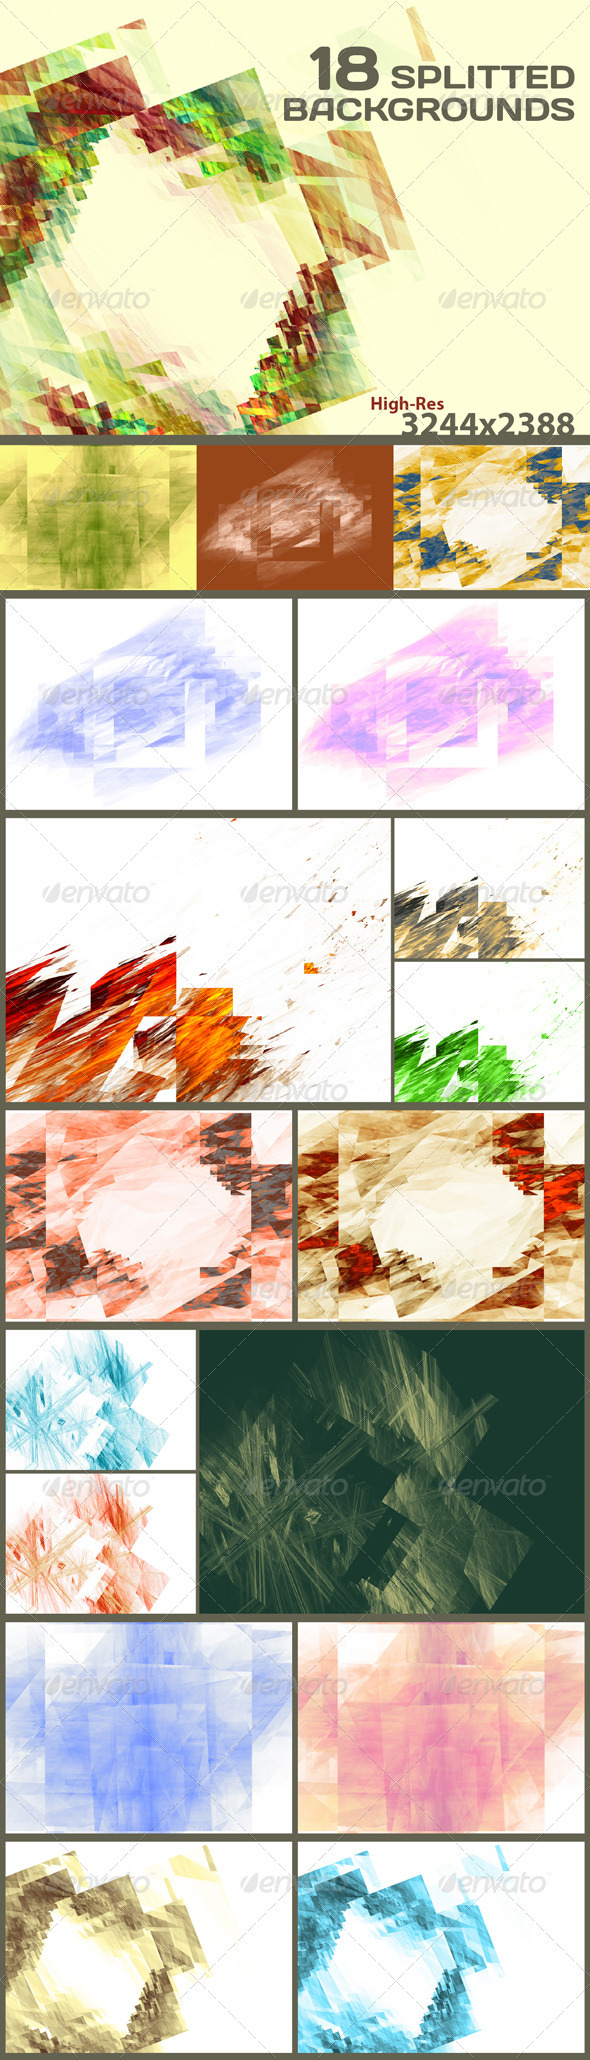 GraphicRiver 18 Splitted Backgrounds 3797379